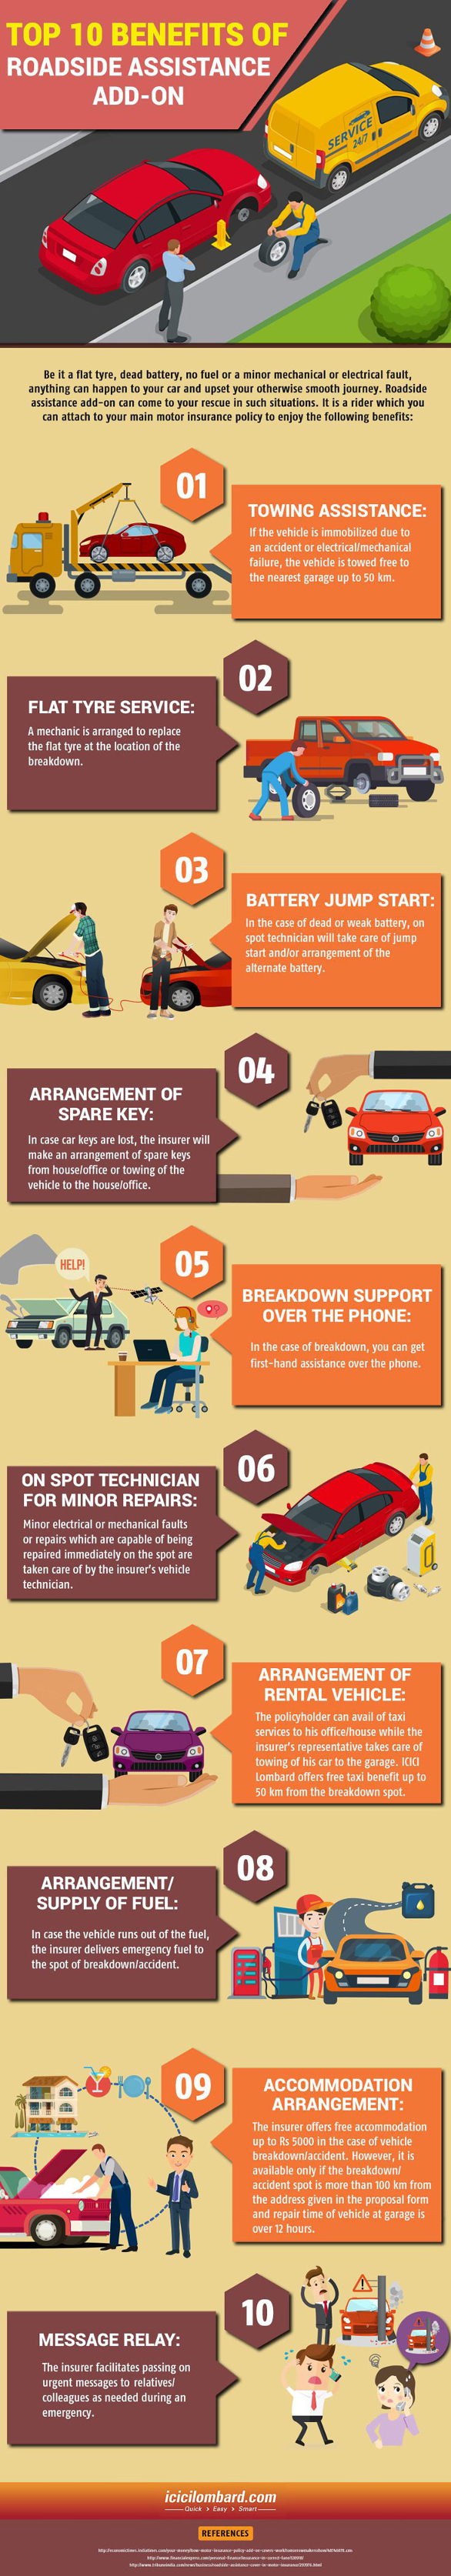 Top 10 Benefits of Roadside Assistance Add-on